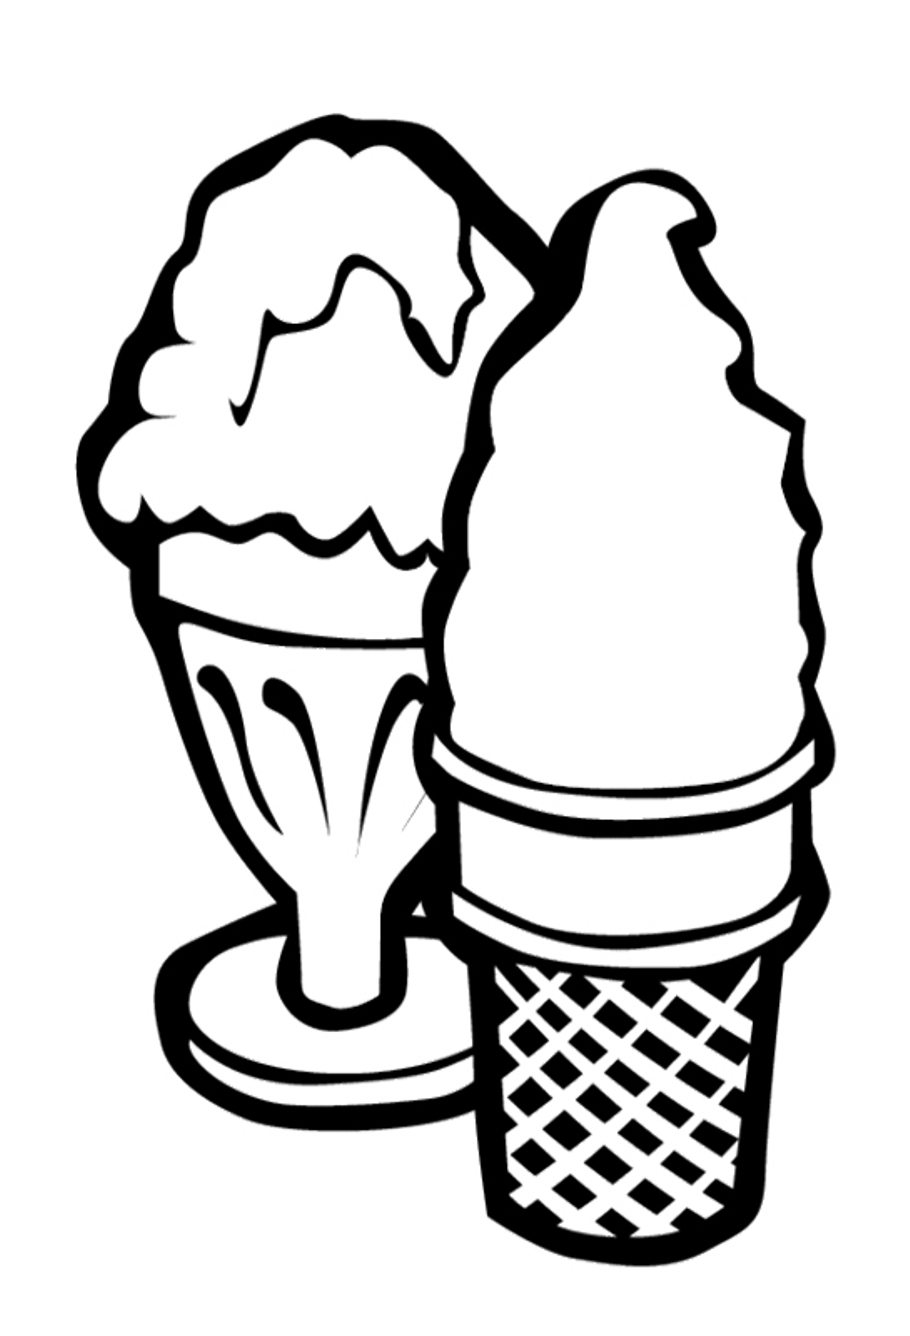 coloring page printable ice cream ice cream coloring pages download and print for free page coloring printable ice cream